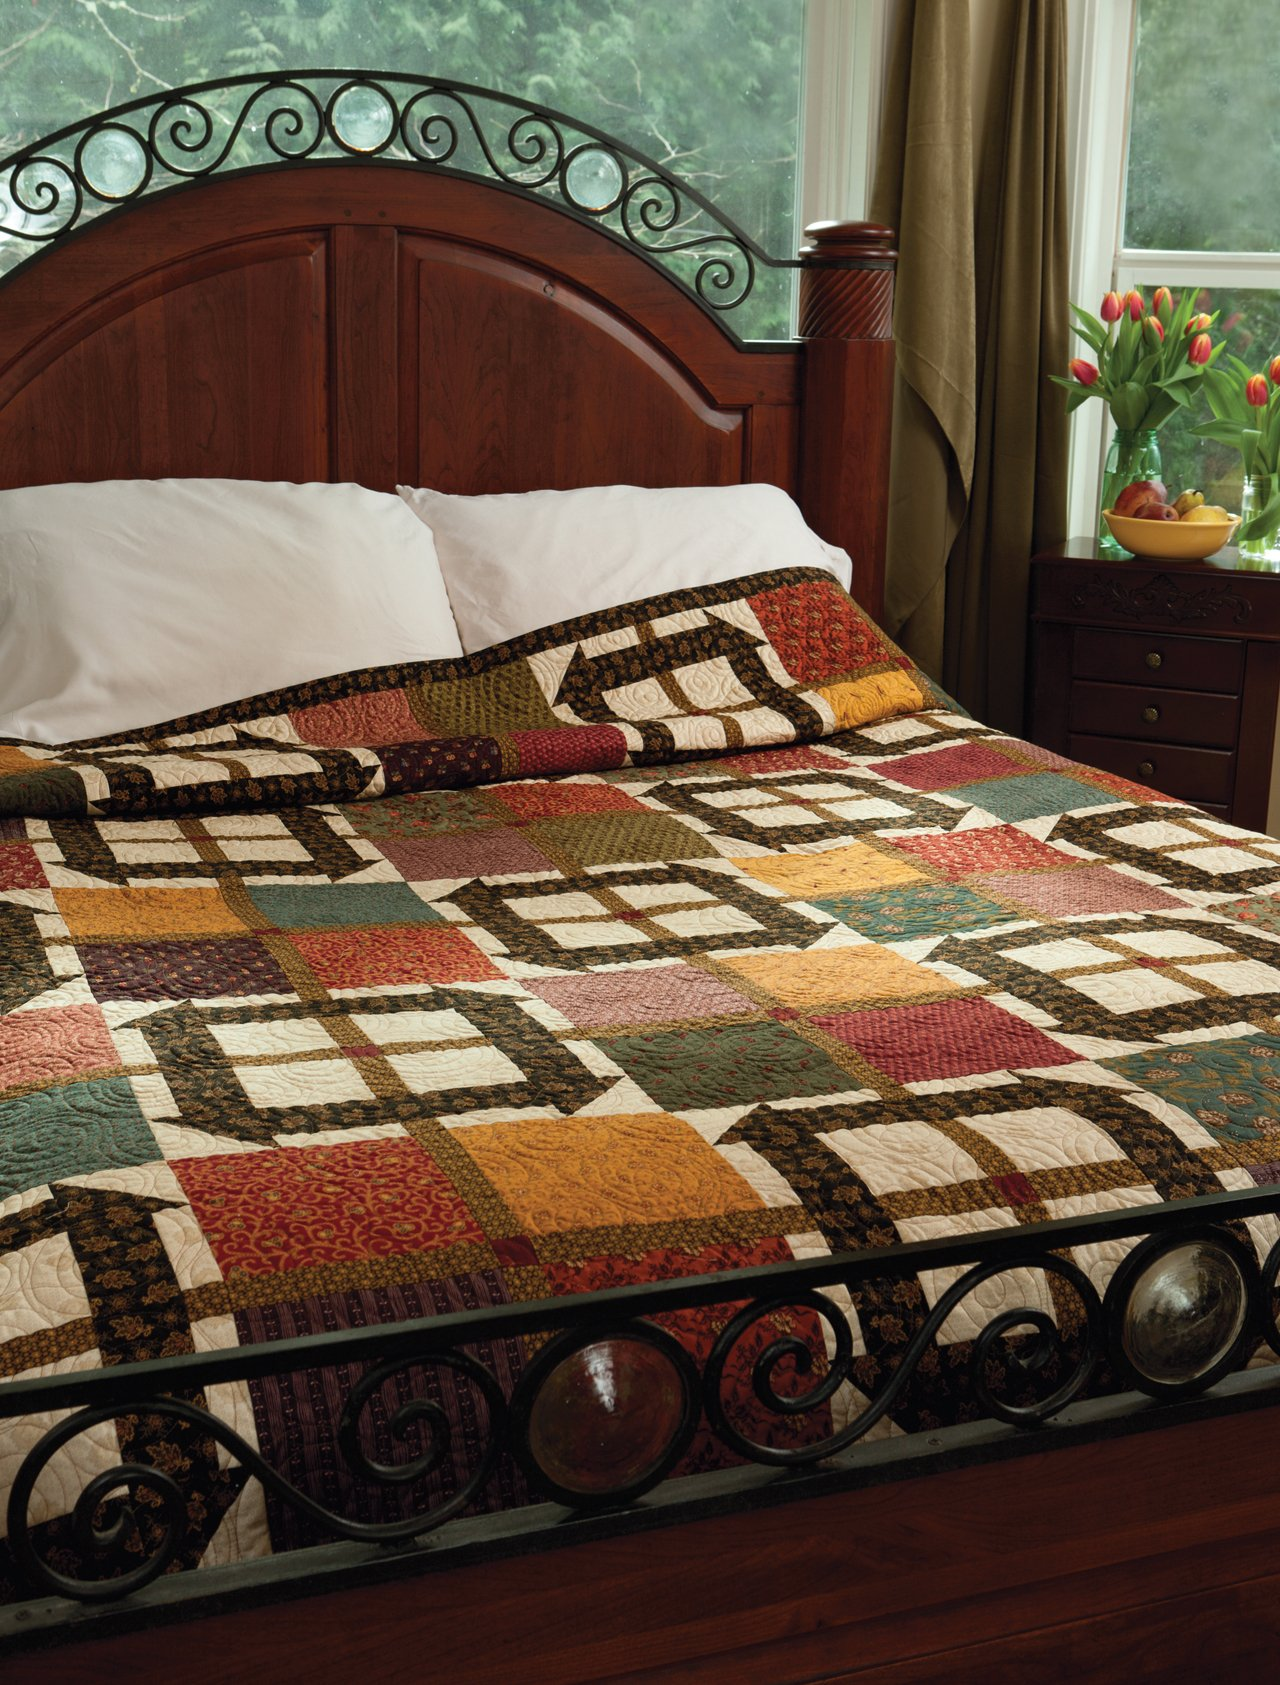 Homestyle Quilts: Simple Patterns and Savory Recipes: Kim Diehl ...